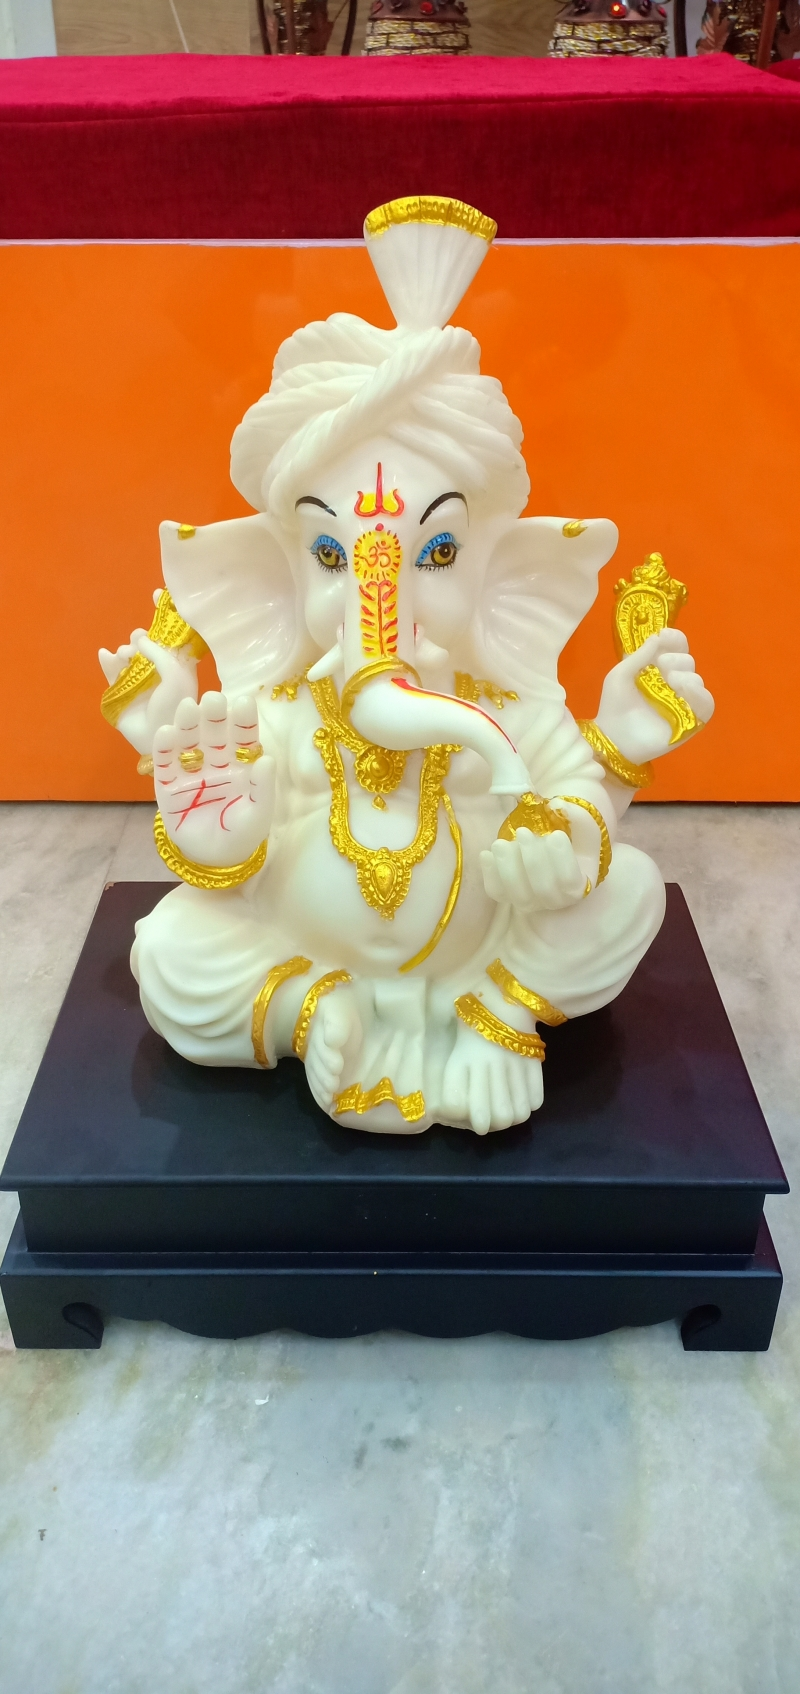 Buy Genuine White And Golden Big Ganesha Polyresin Idols Bring